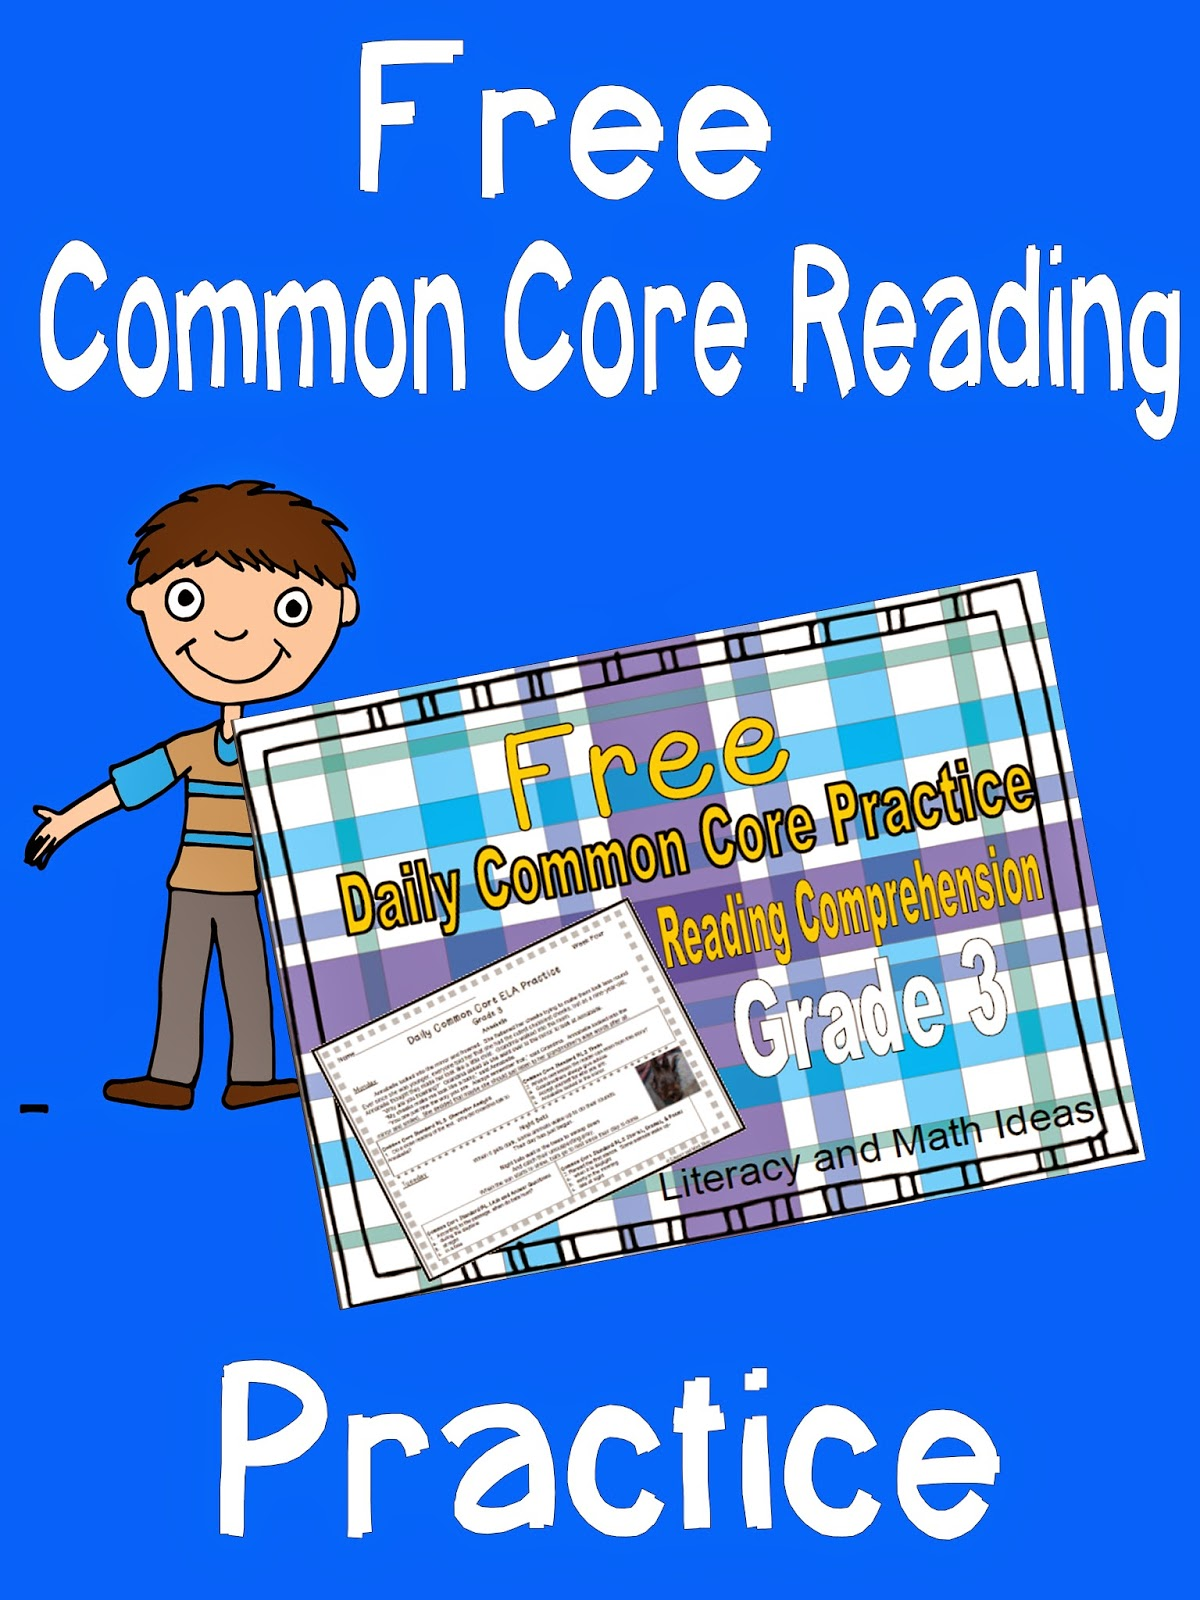 Daily Math Practice Grade 3 Worksheets literacy math ideas free – Daily Math Practice Worksheets